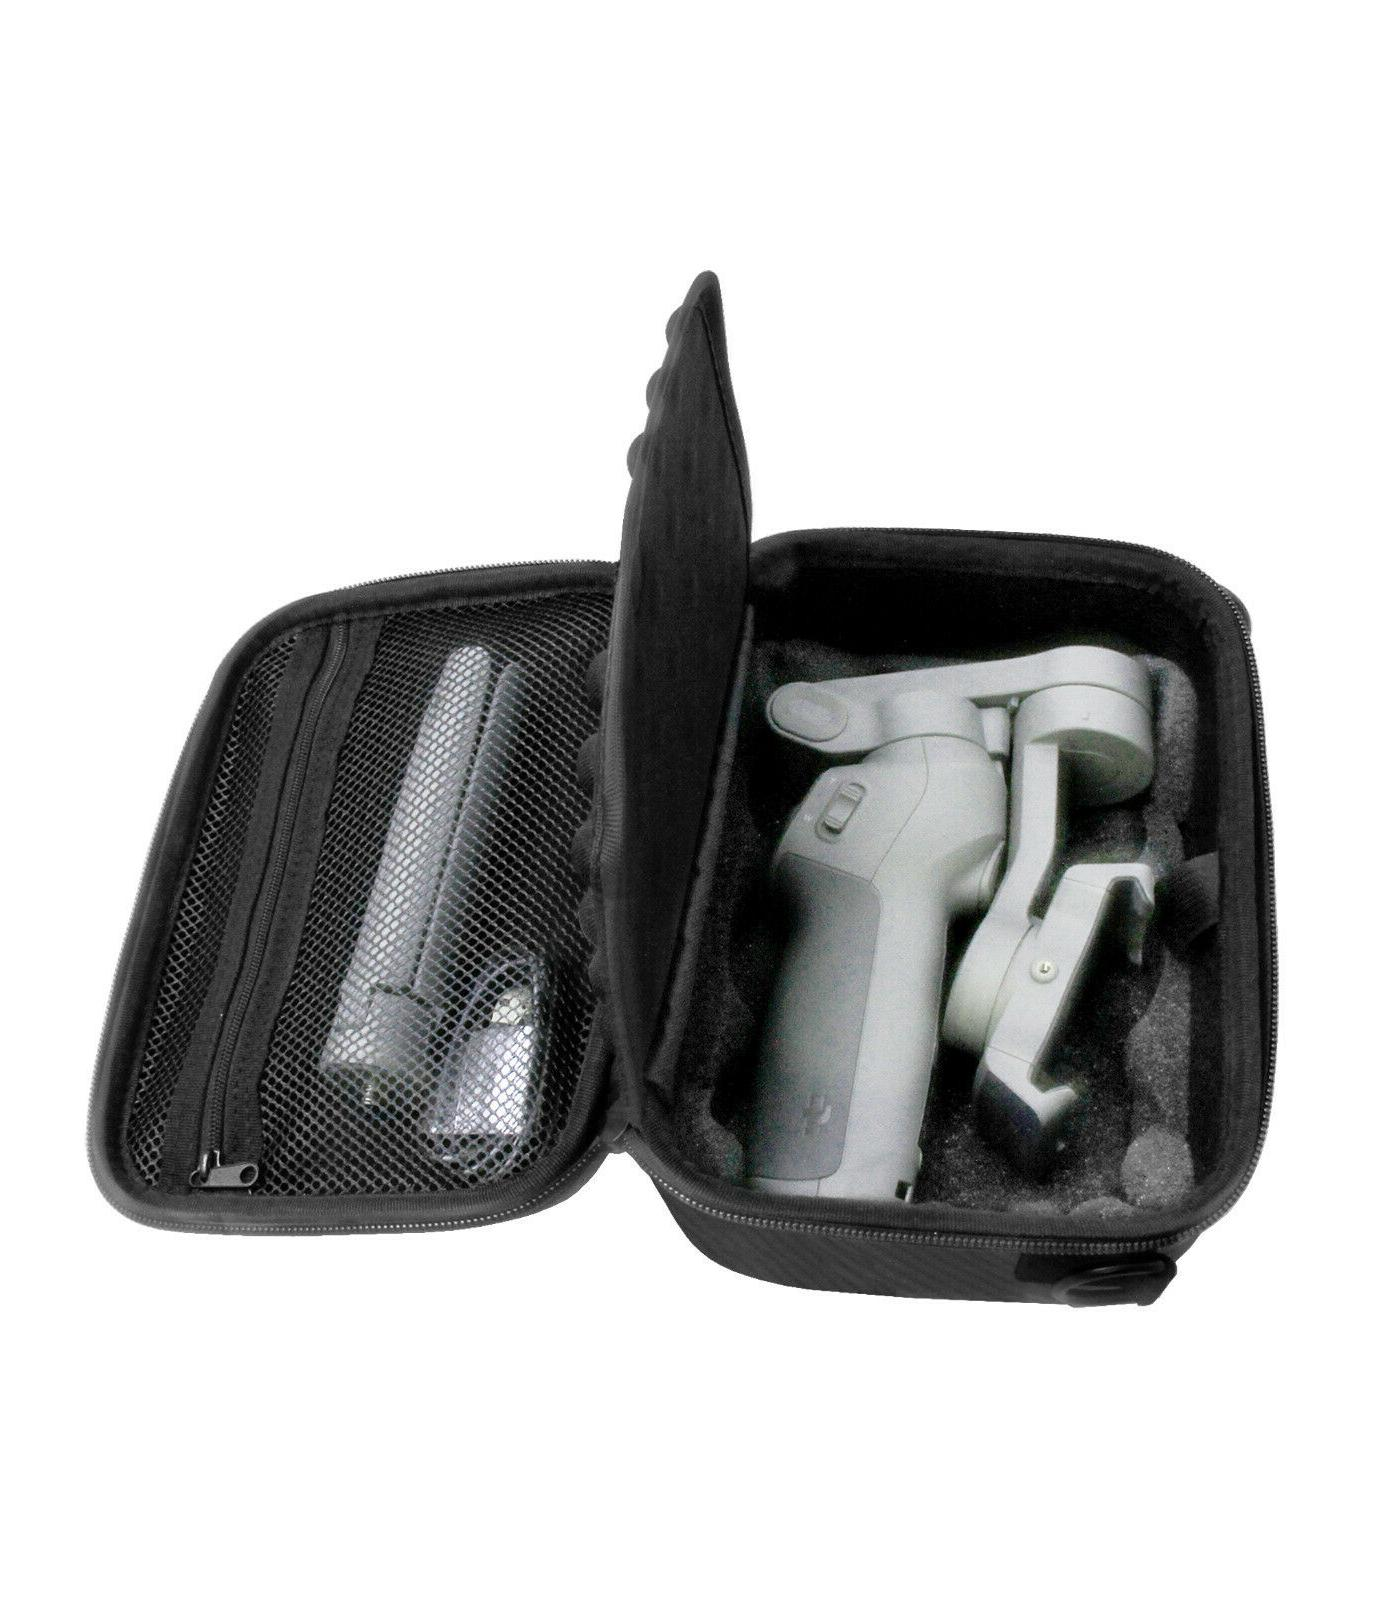 protective carrying case fits dji osmo mobile